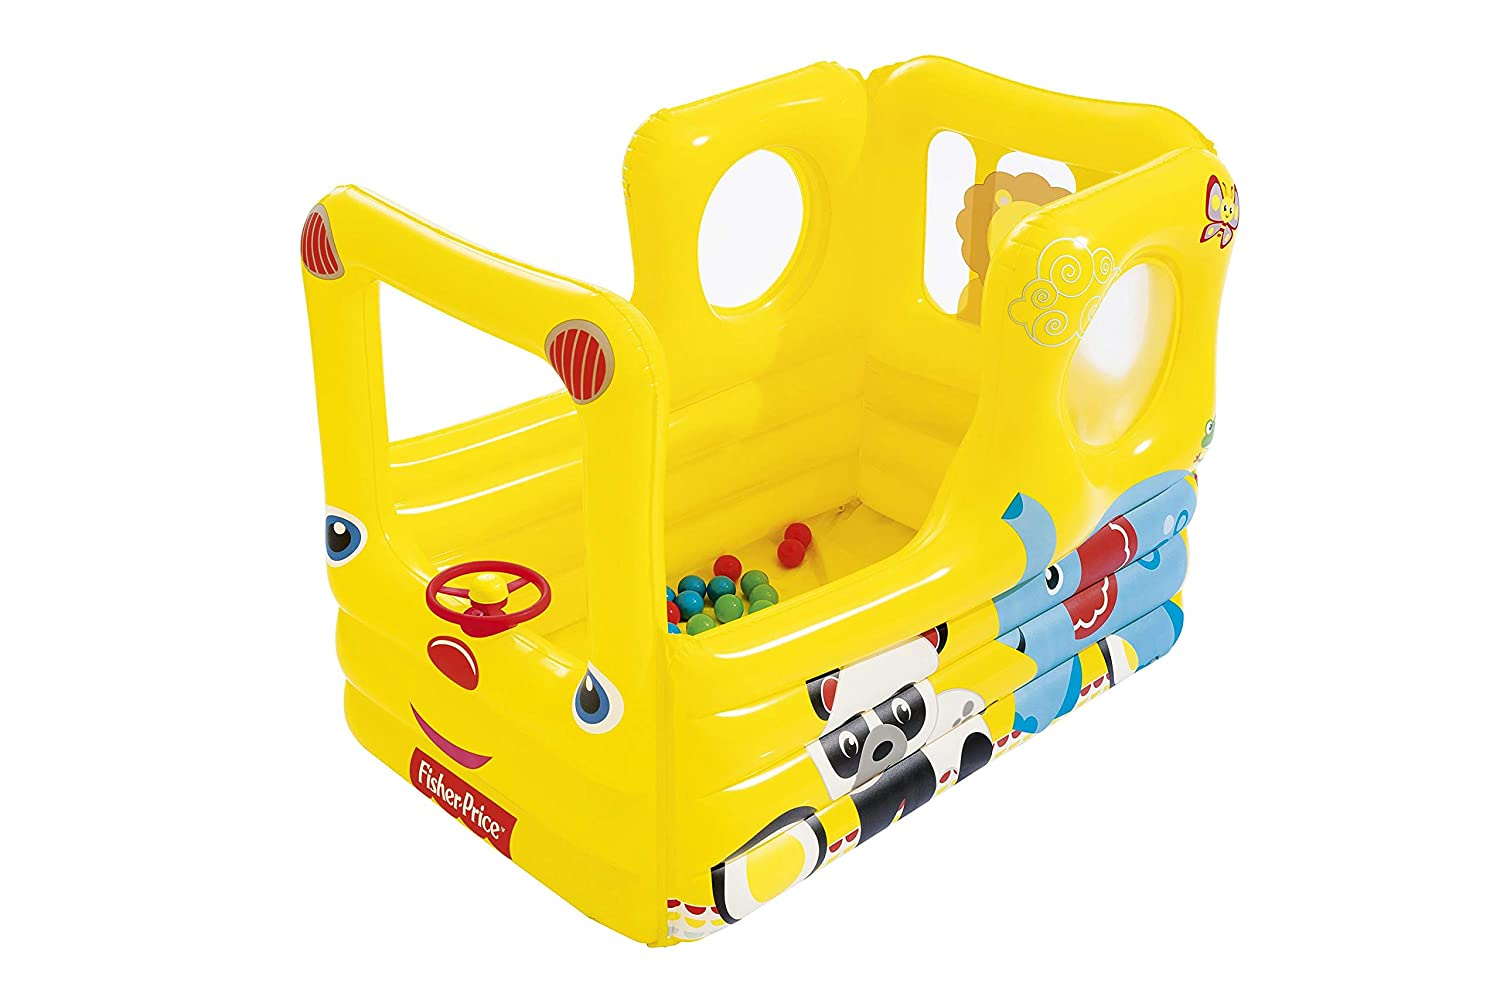 Piscina de Bolas Hinchable Bestway Fisher Price Coche de Carreras ...